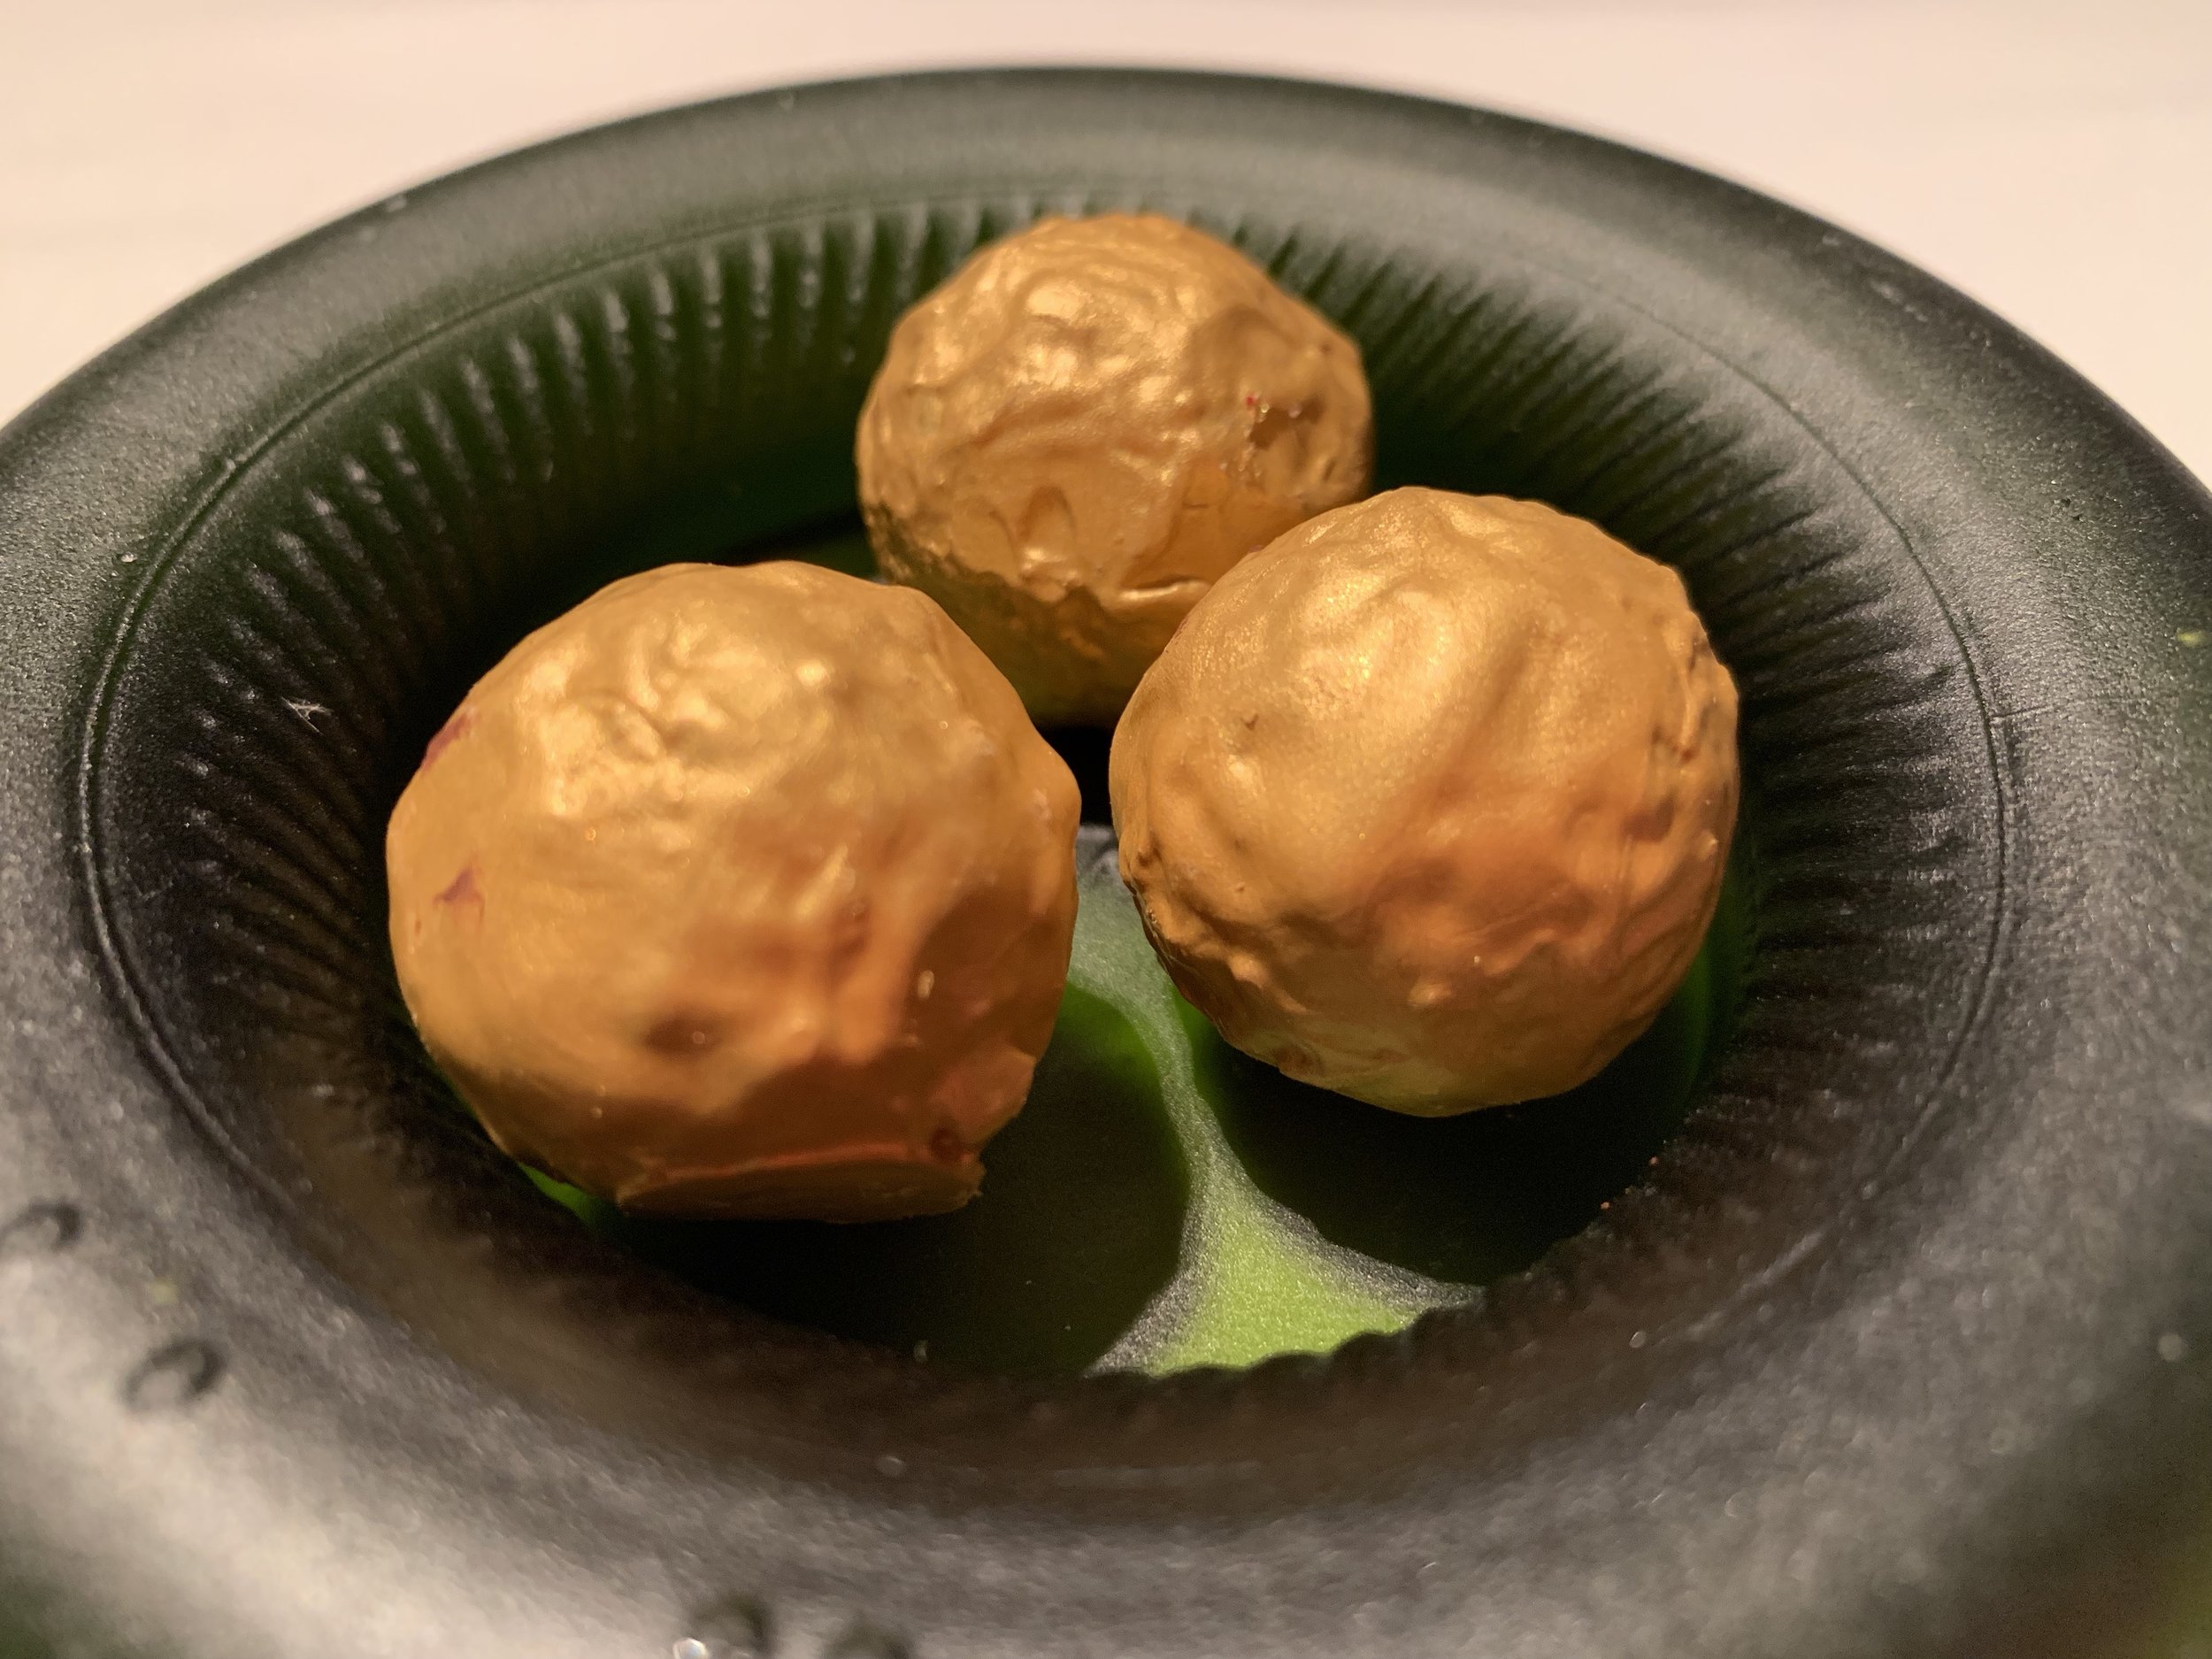 Golden balls that had pop rocks in them